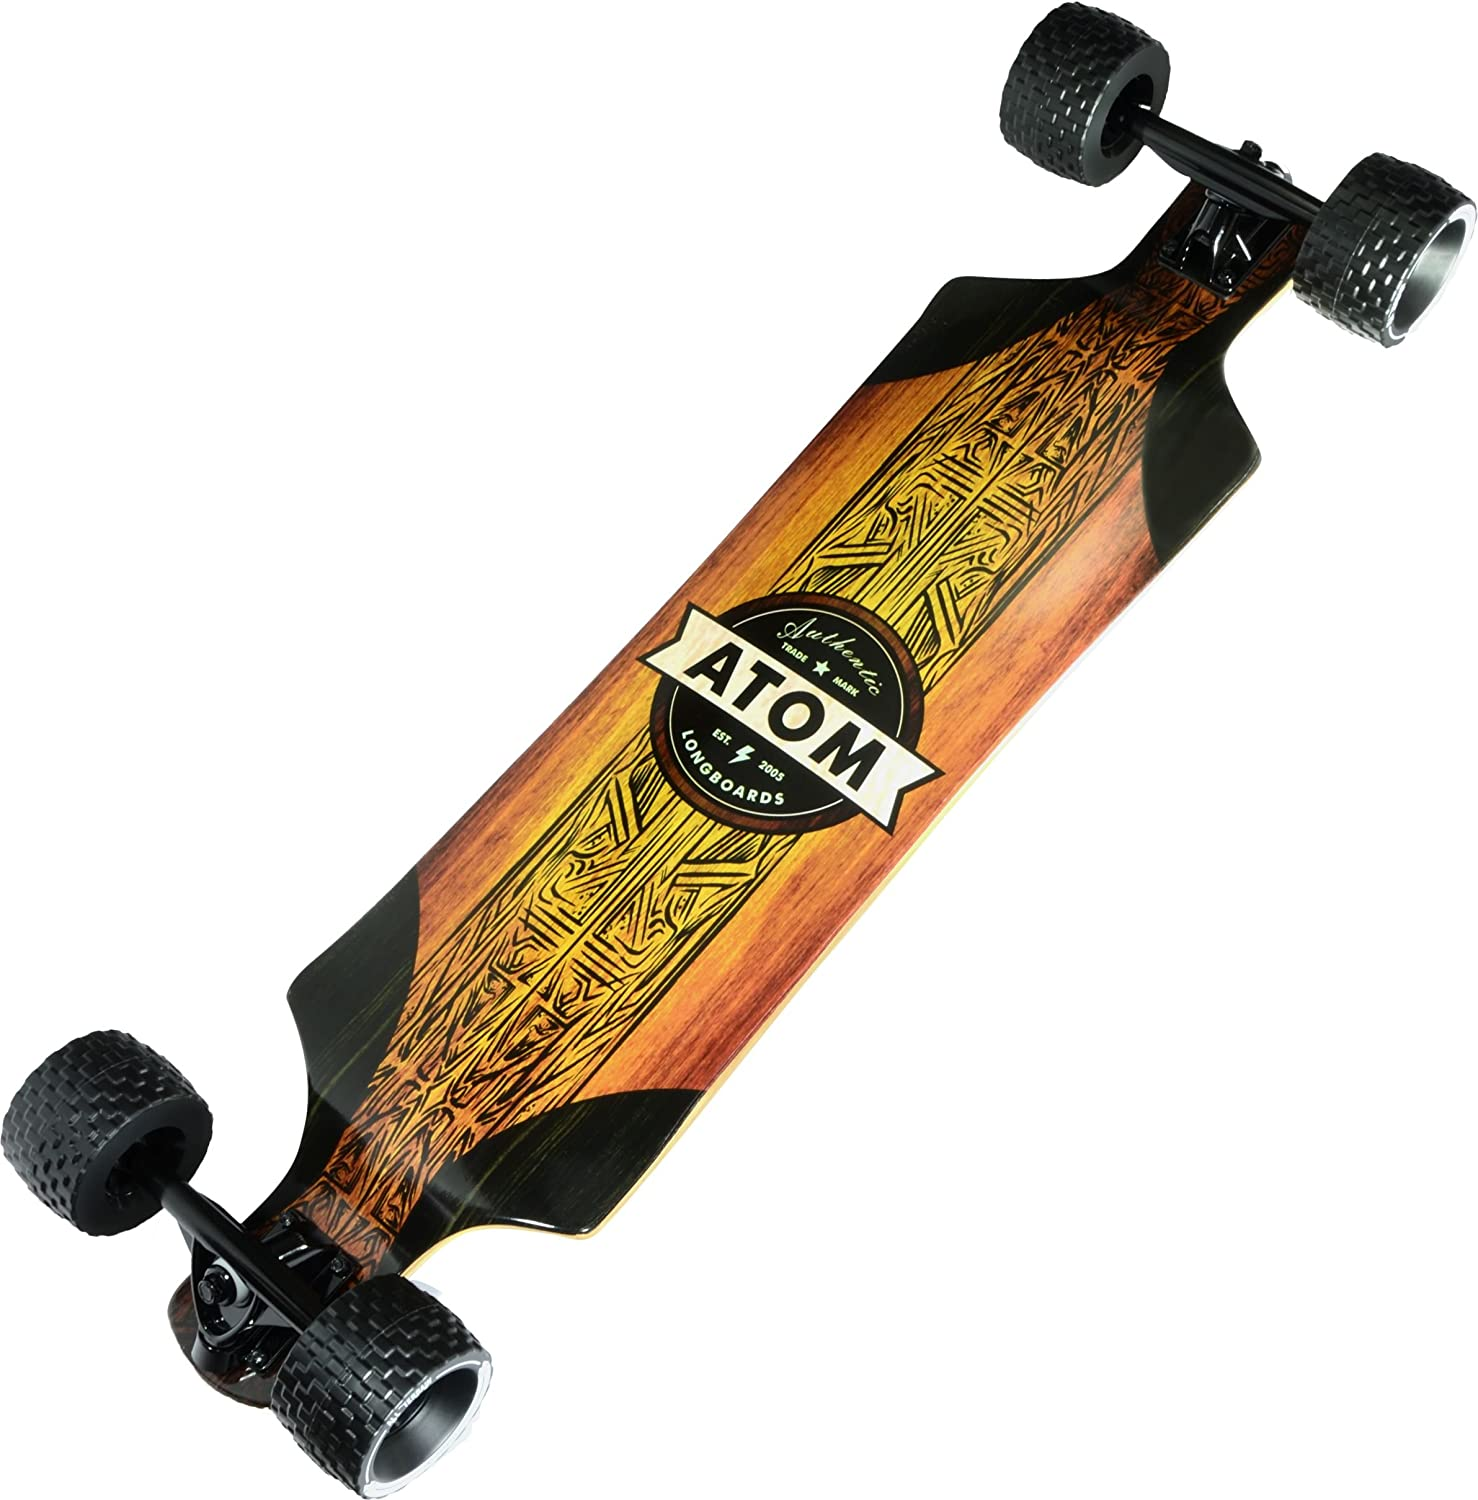 "Atom Longboards Atom All-Terrain Longboard - 39"", Woody"